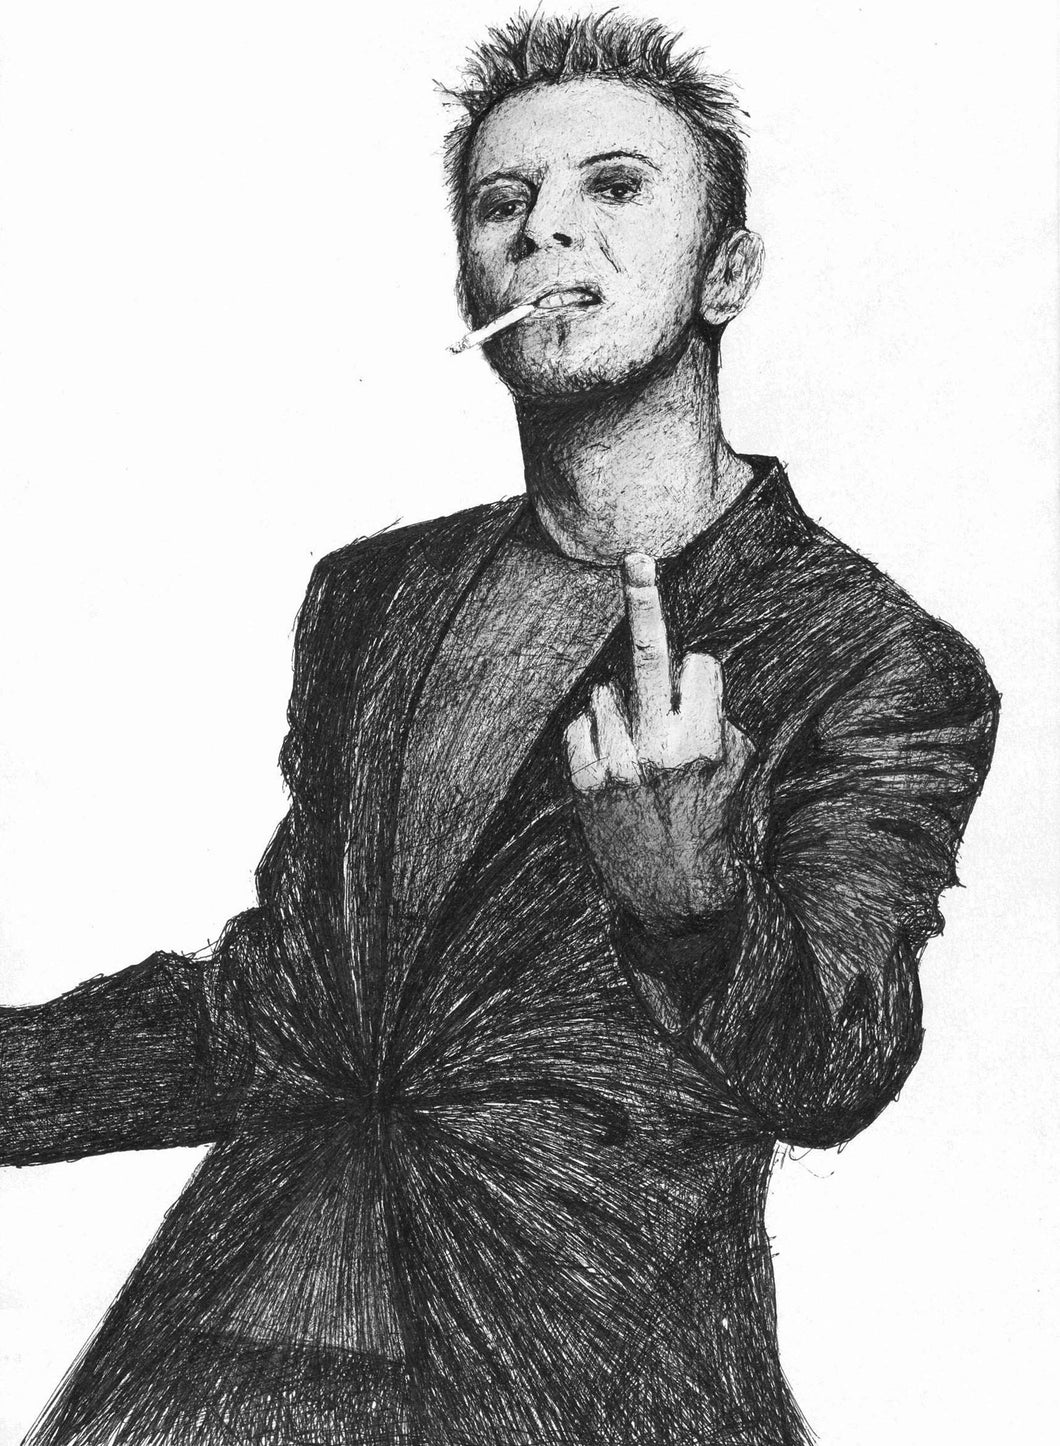 David Bowie middle finger up yours fuck you series pen drawing portrait print fan art poster